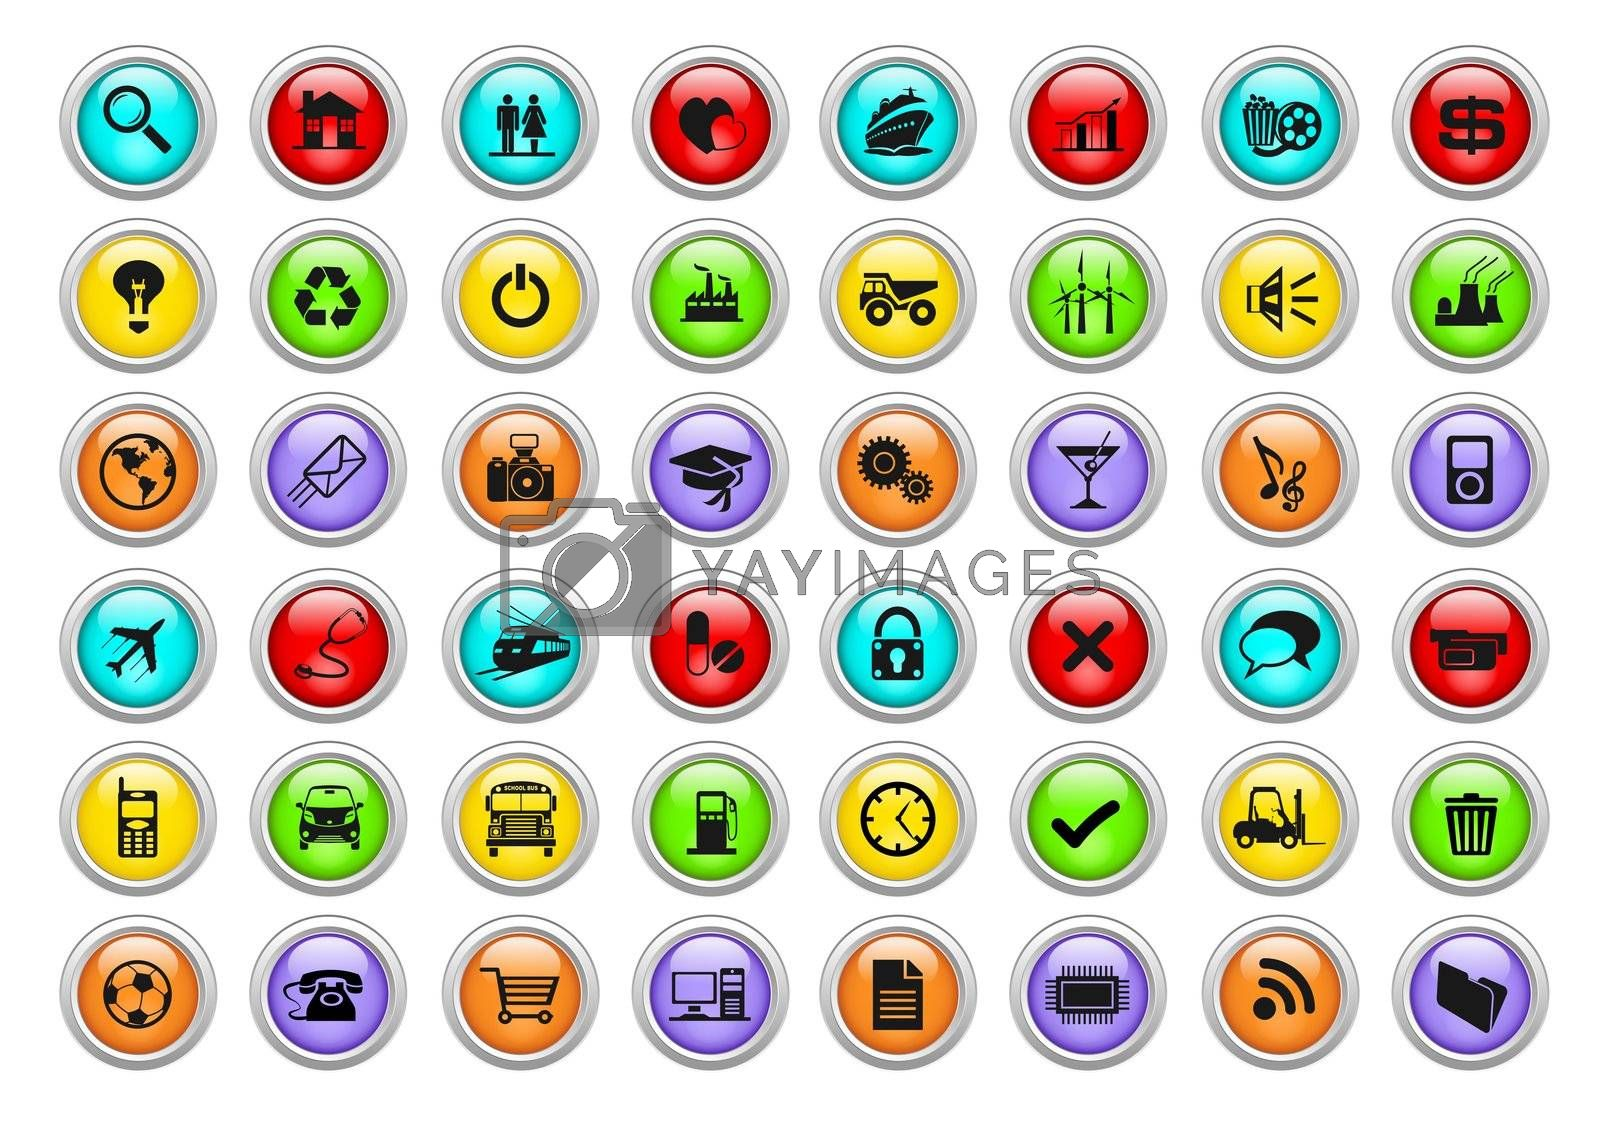 An illustration of different colorful web icons